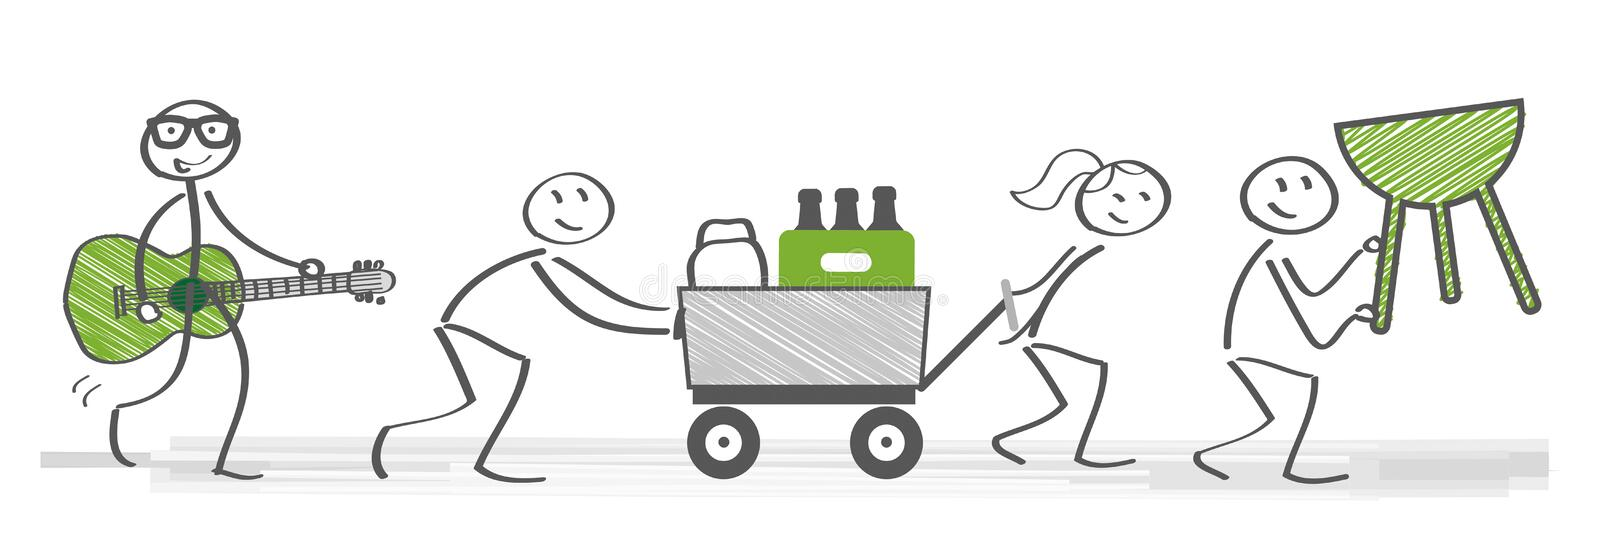 Friends having a barbecue party. Friends prepare for barbecue party. Vector illustration with stick figures vector illustration